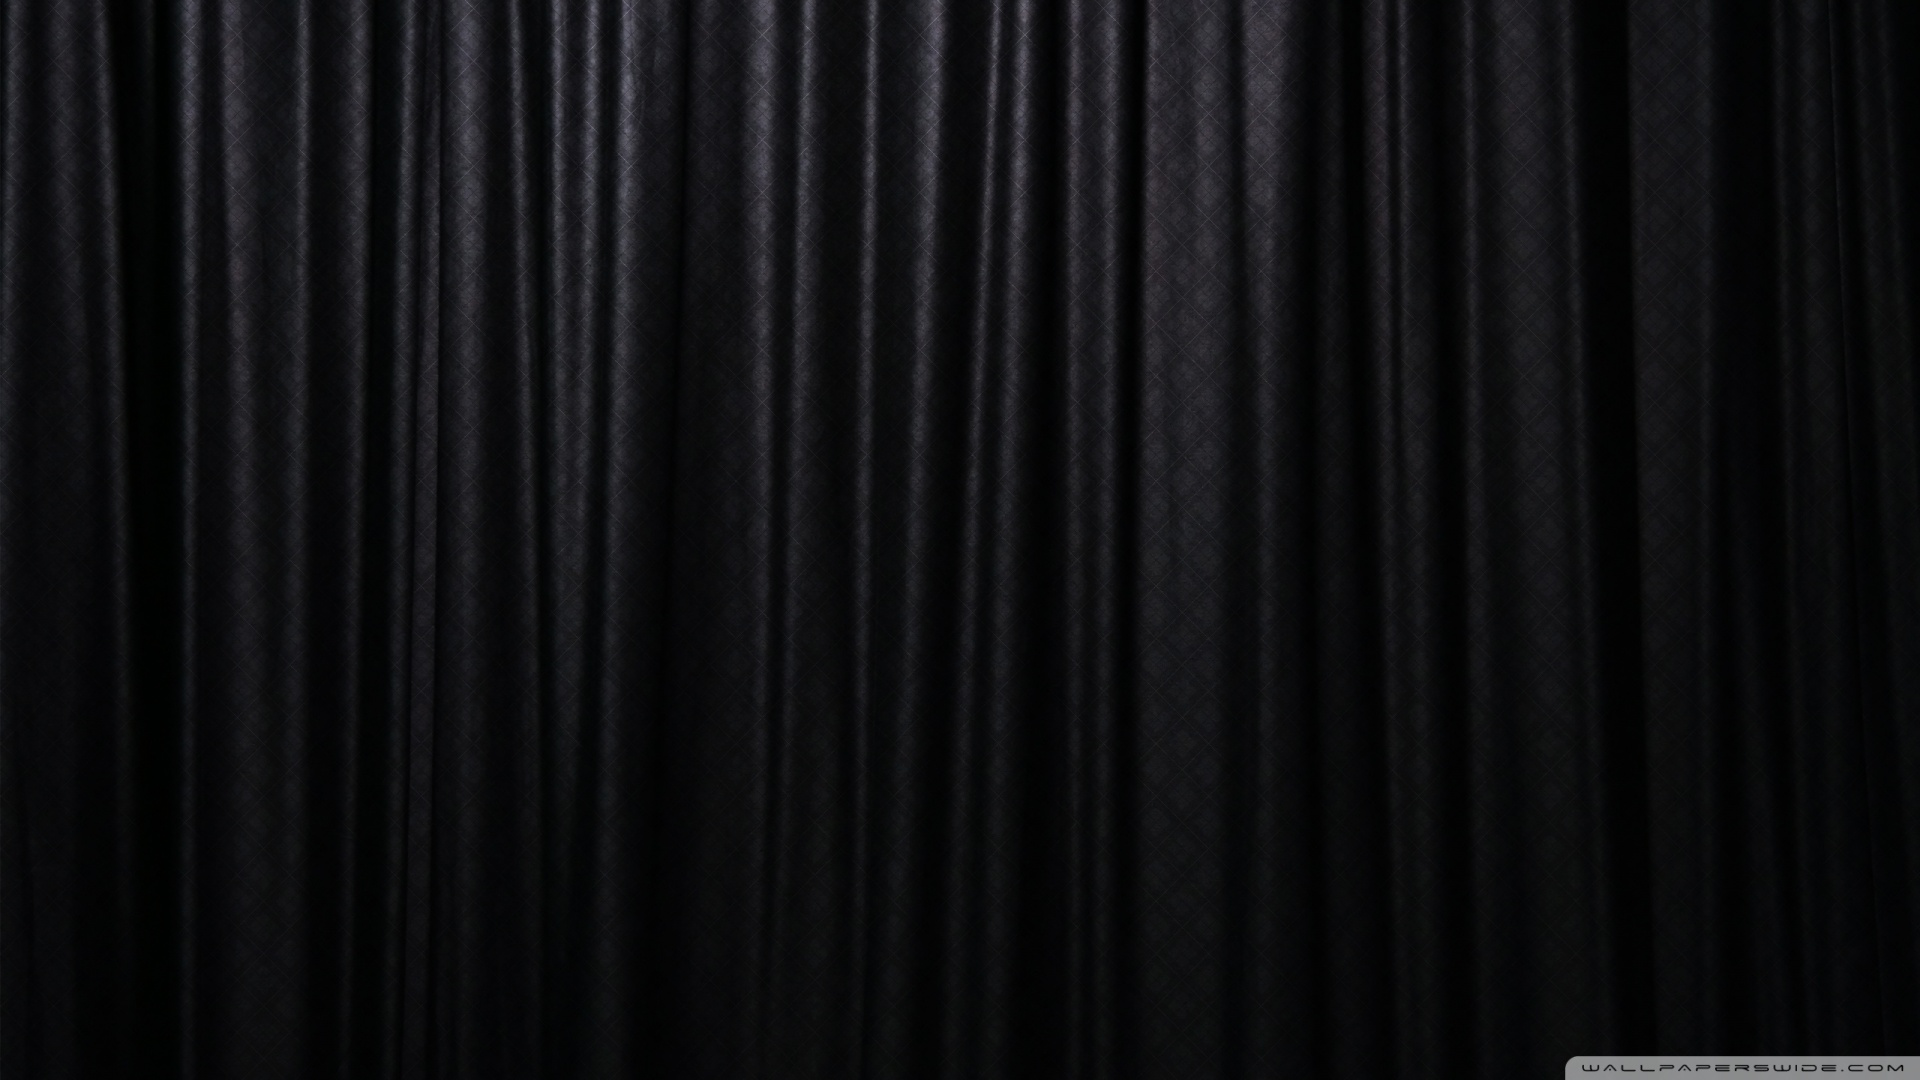 43 Black Curtain Wallpaper On Wallpapersafari